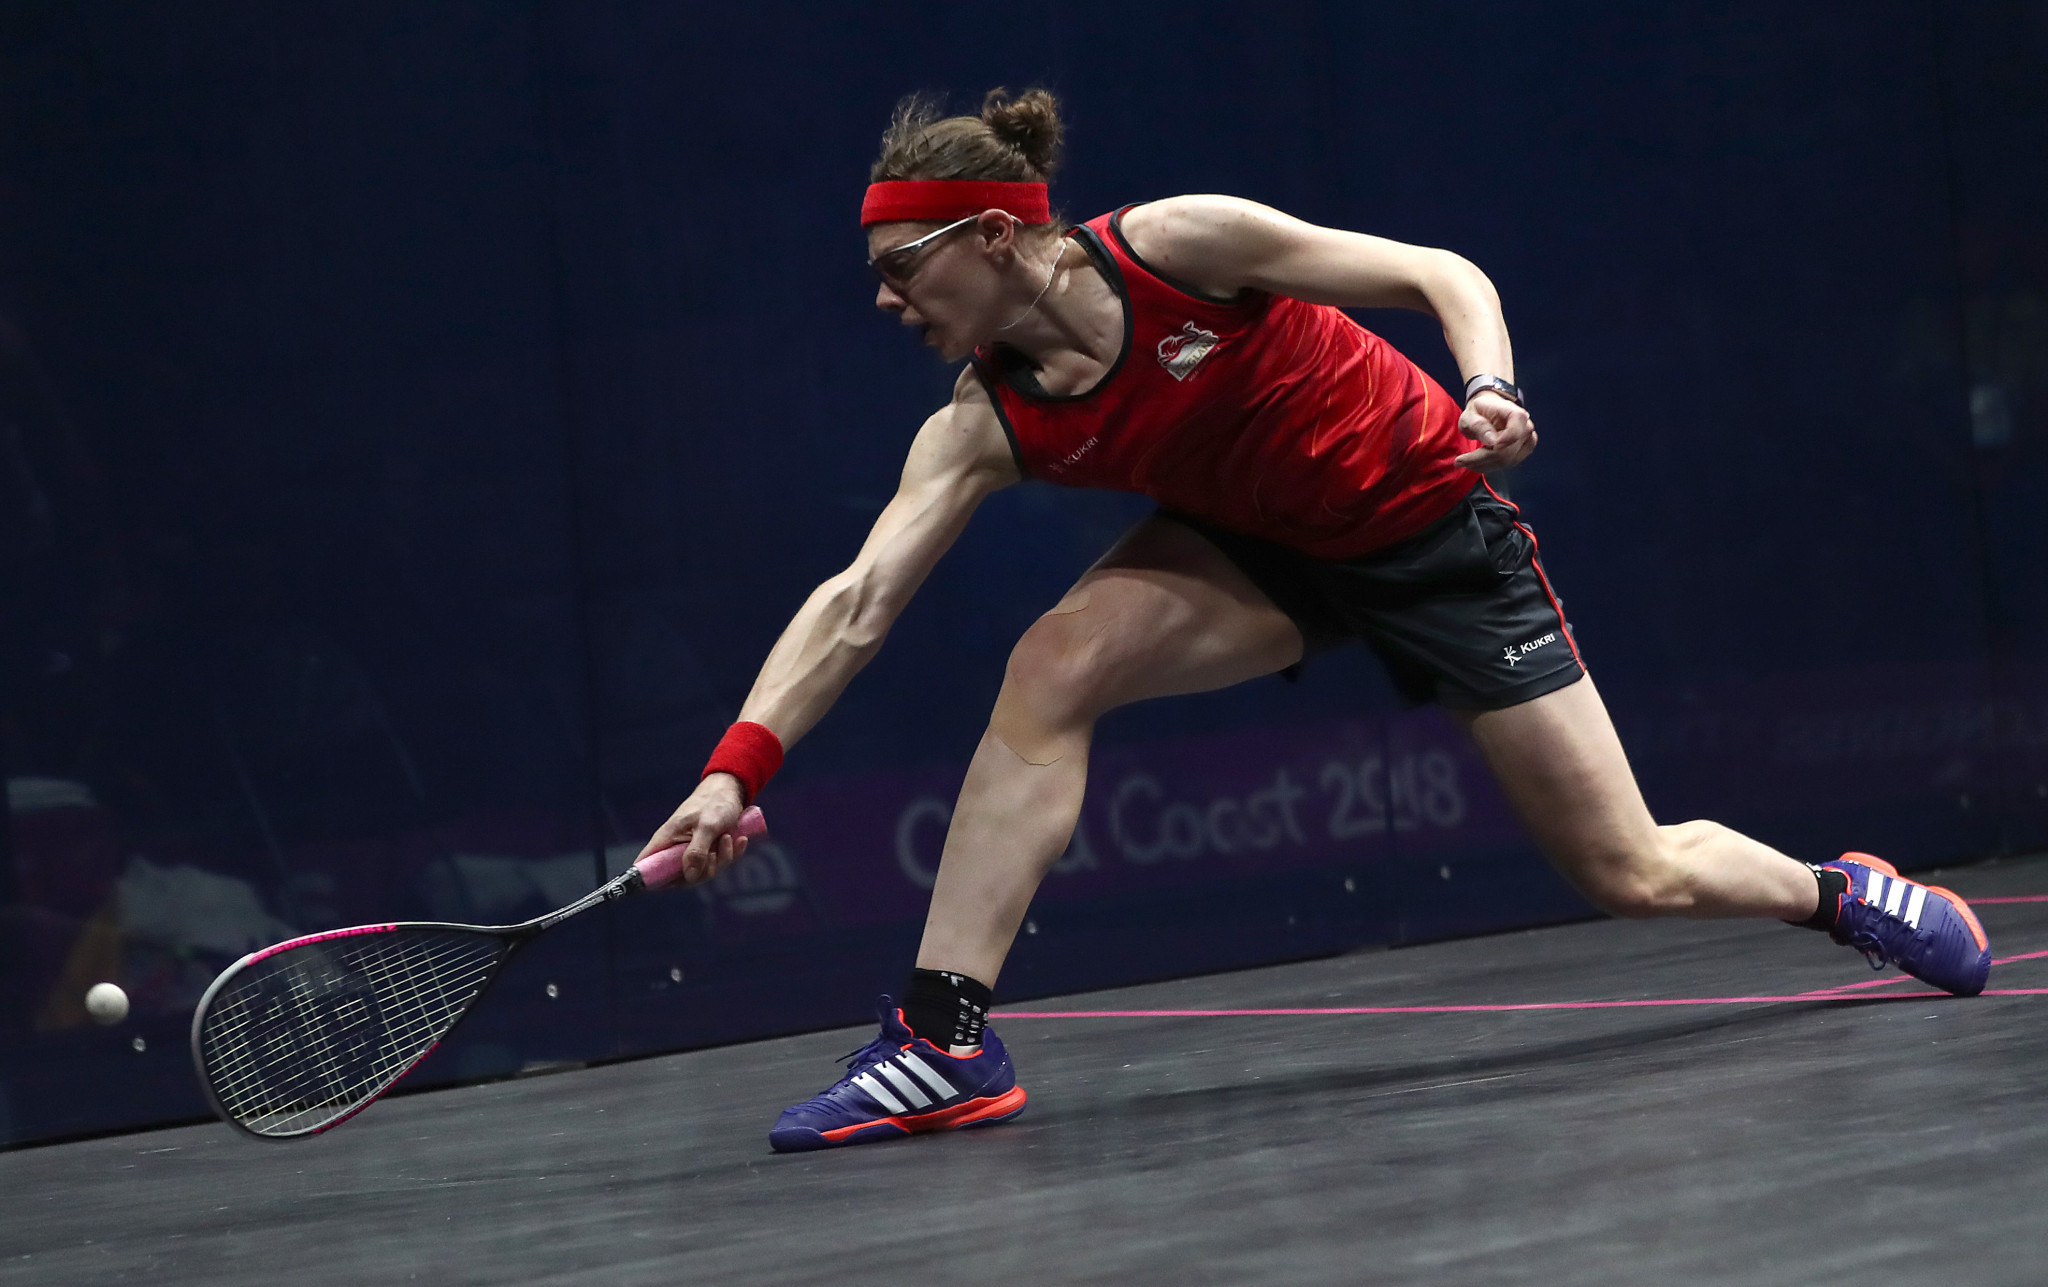 Sarah-Jane Perry overcame Hollie Naughton in a five-game thriller at the National Squash Centre ©Getty Images